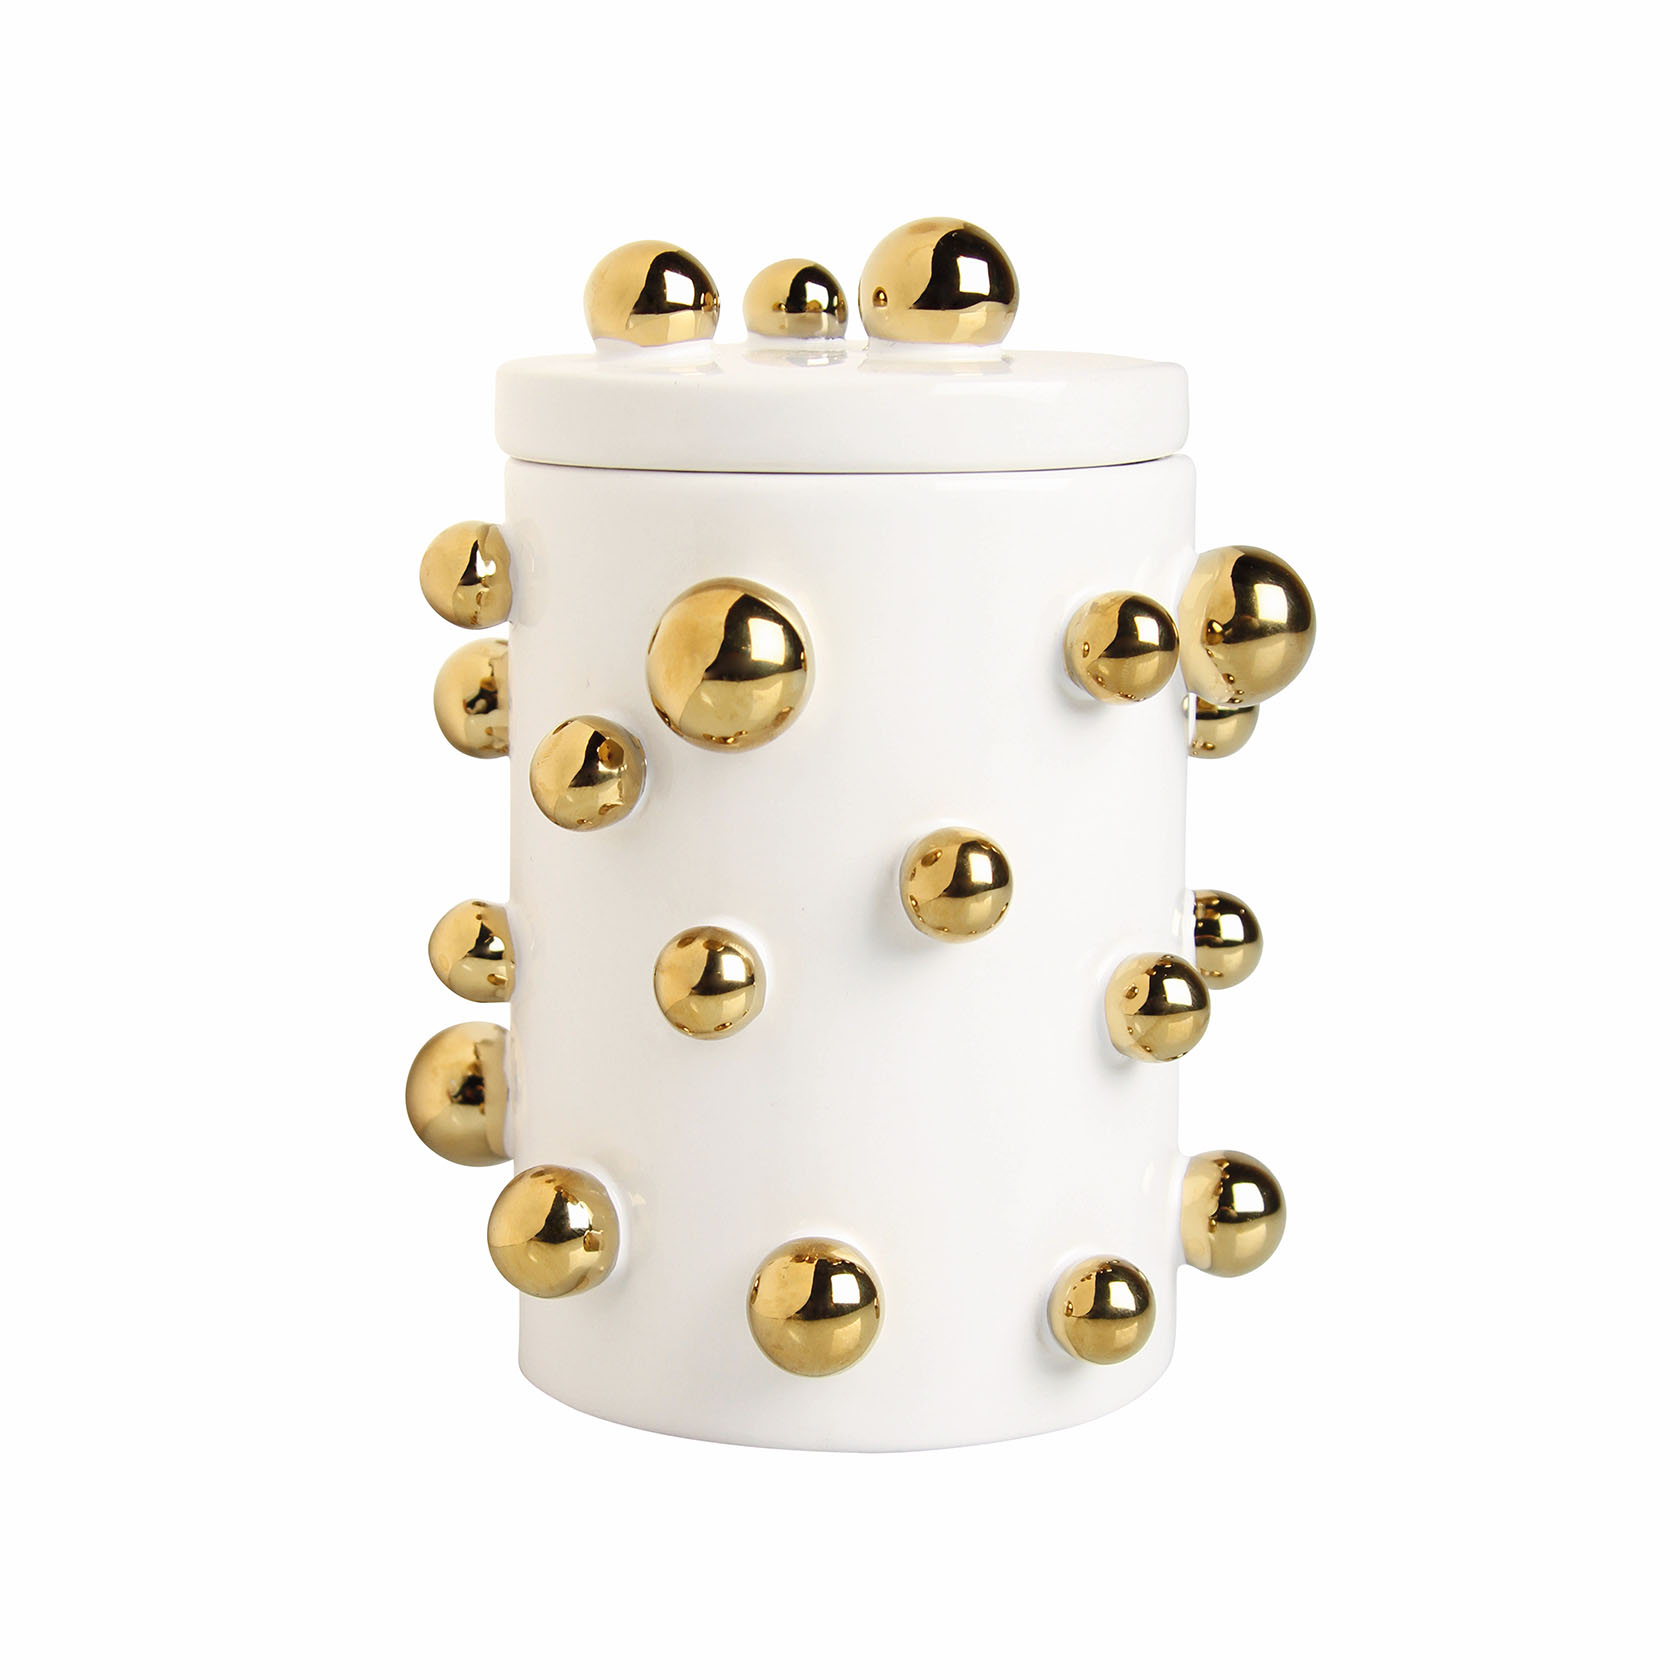 &k pot white dotted gold